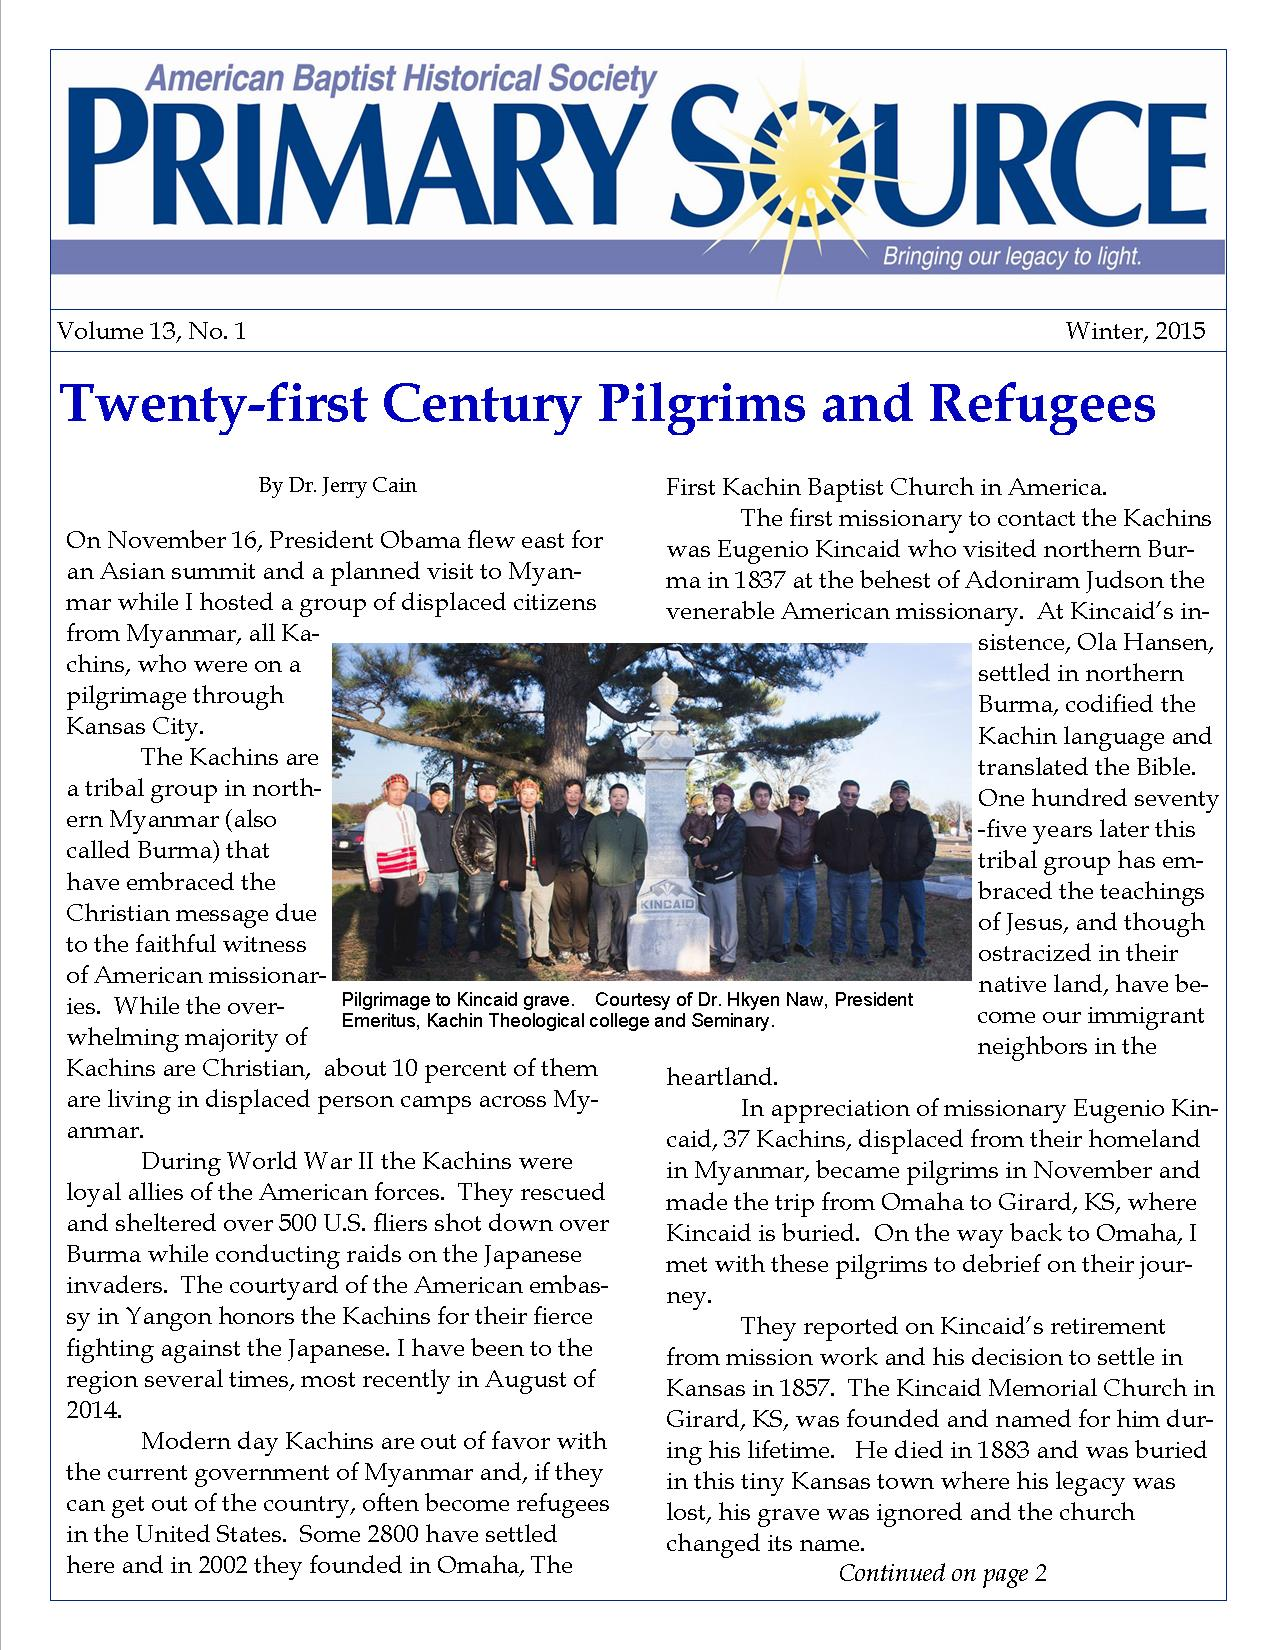 Front Page ABHS Primary Source Newsletter; Vol. 13 issue 1; Winter 2015